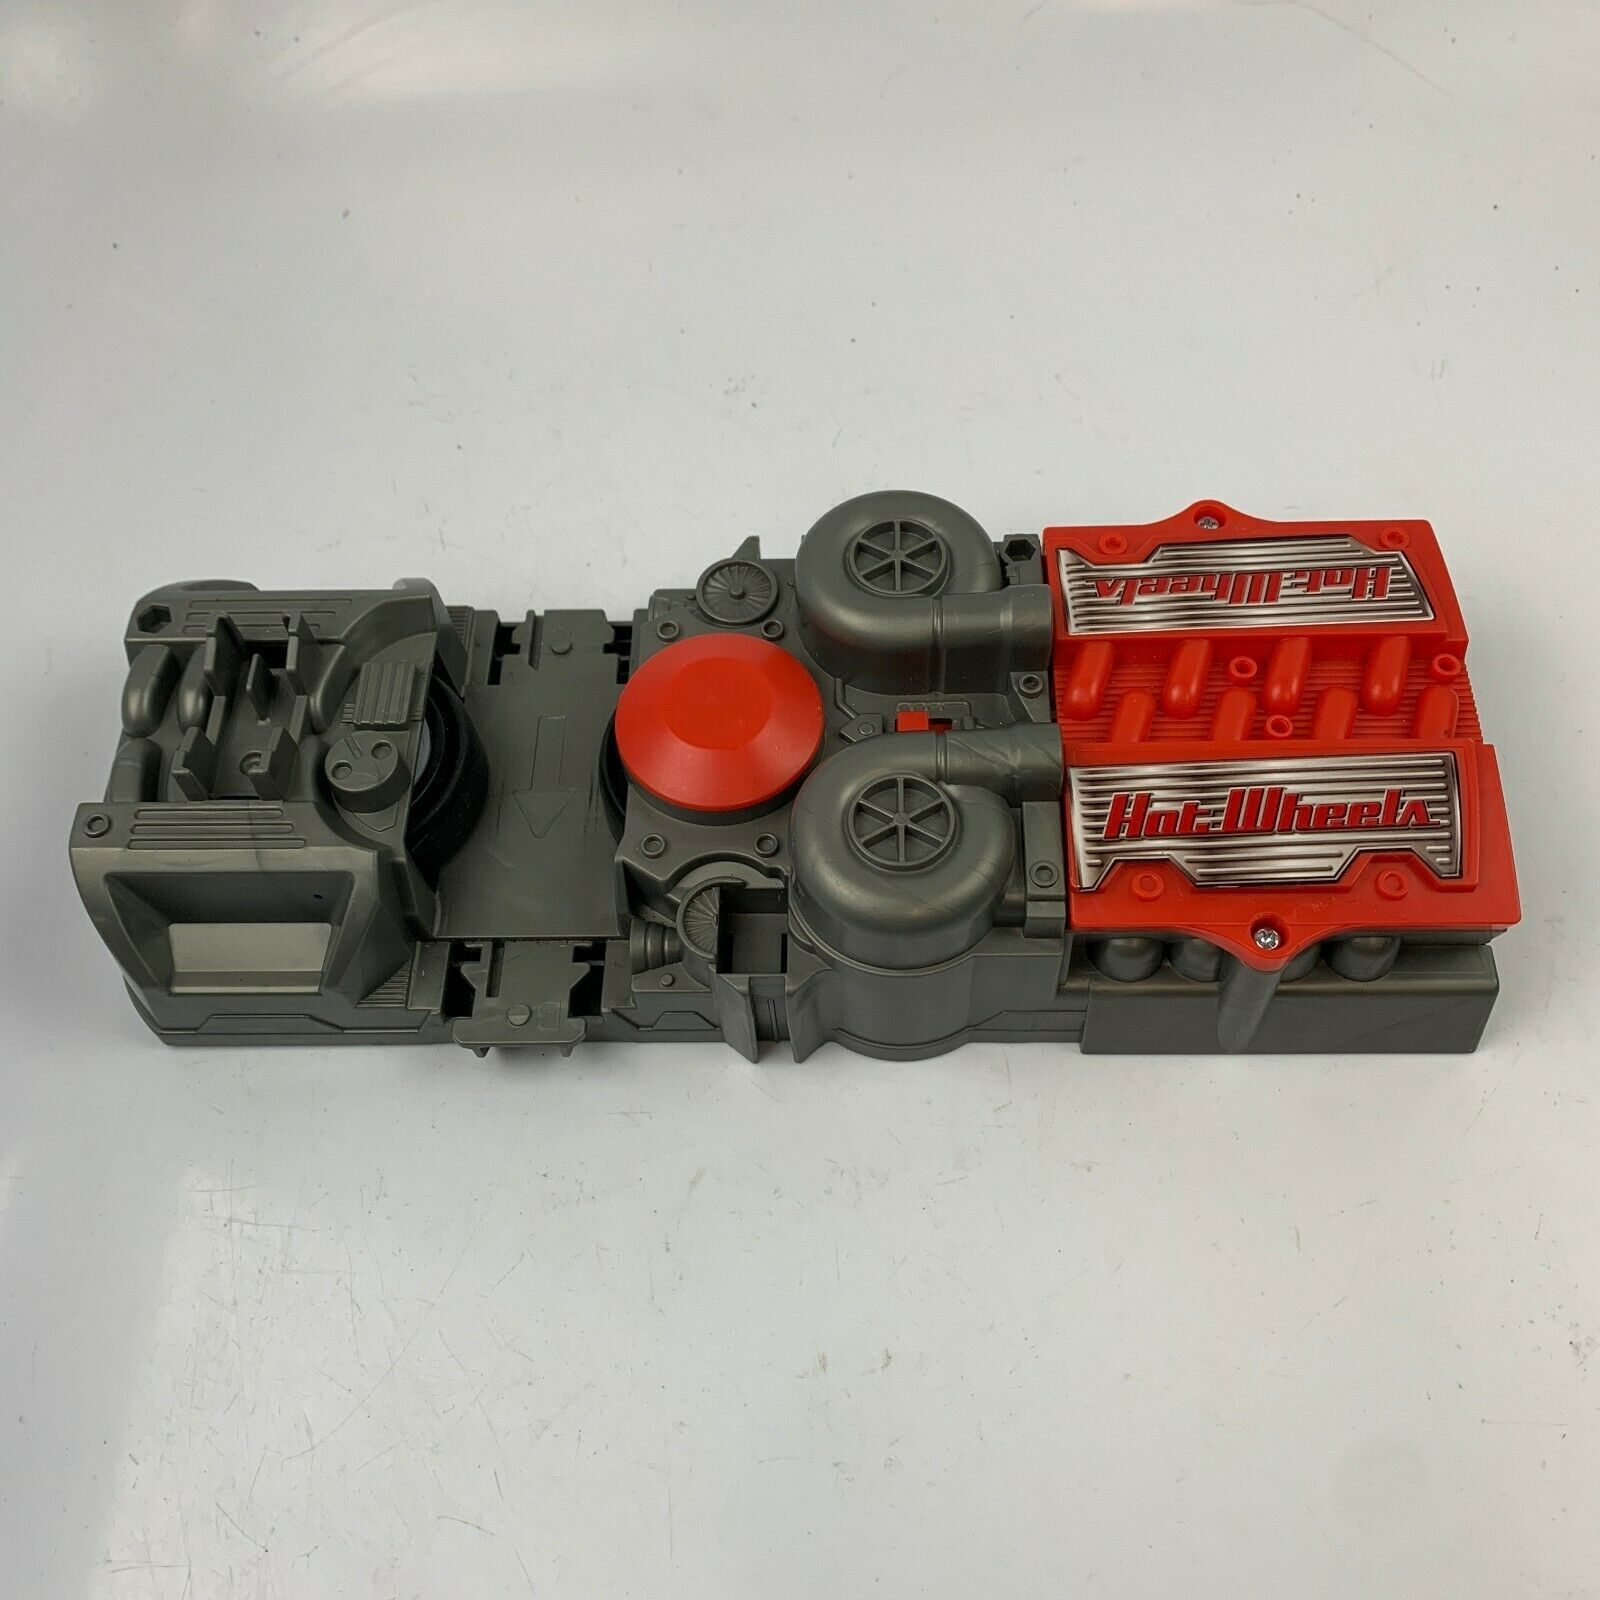 Primary image for Mattel Hot Wheels Track Power Booster Car Launcher Gray and Red 2018 GGF92 Works